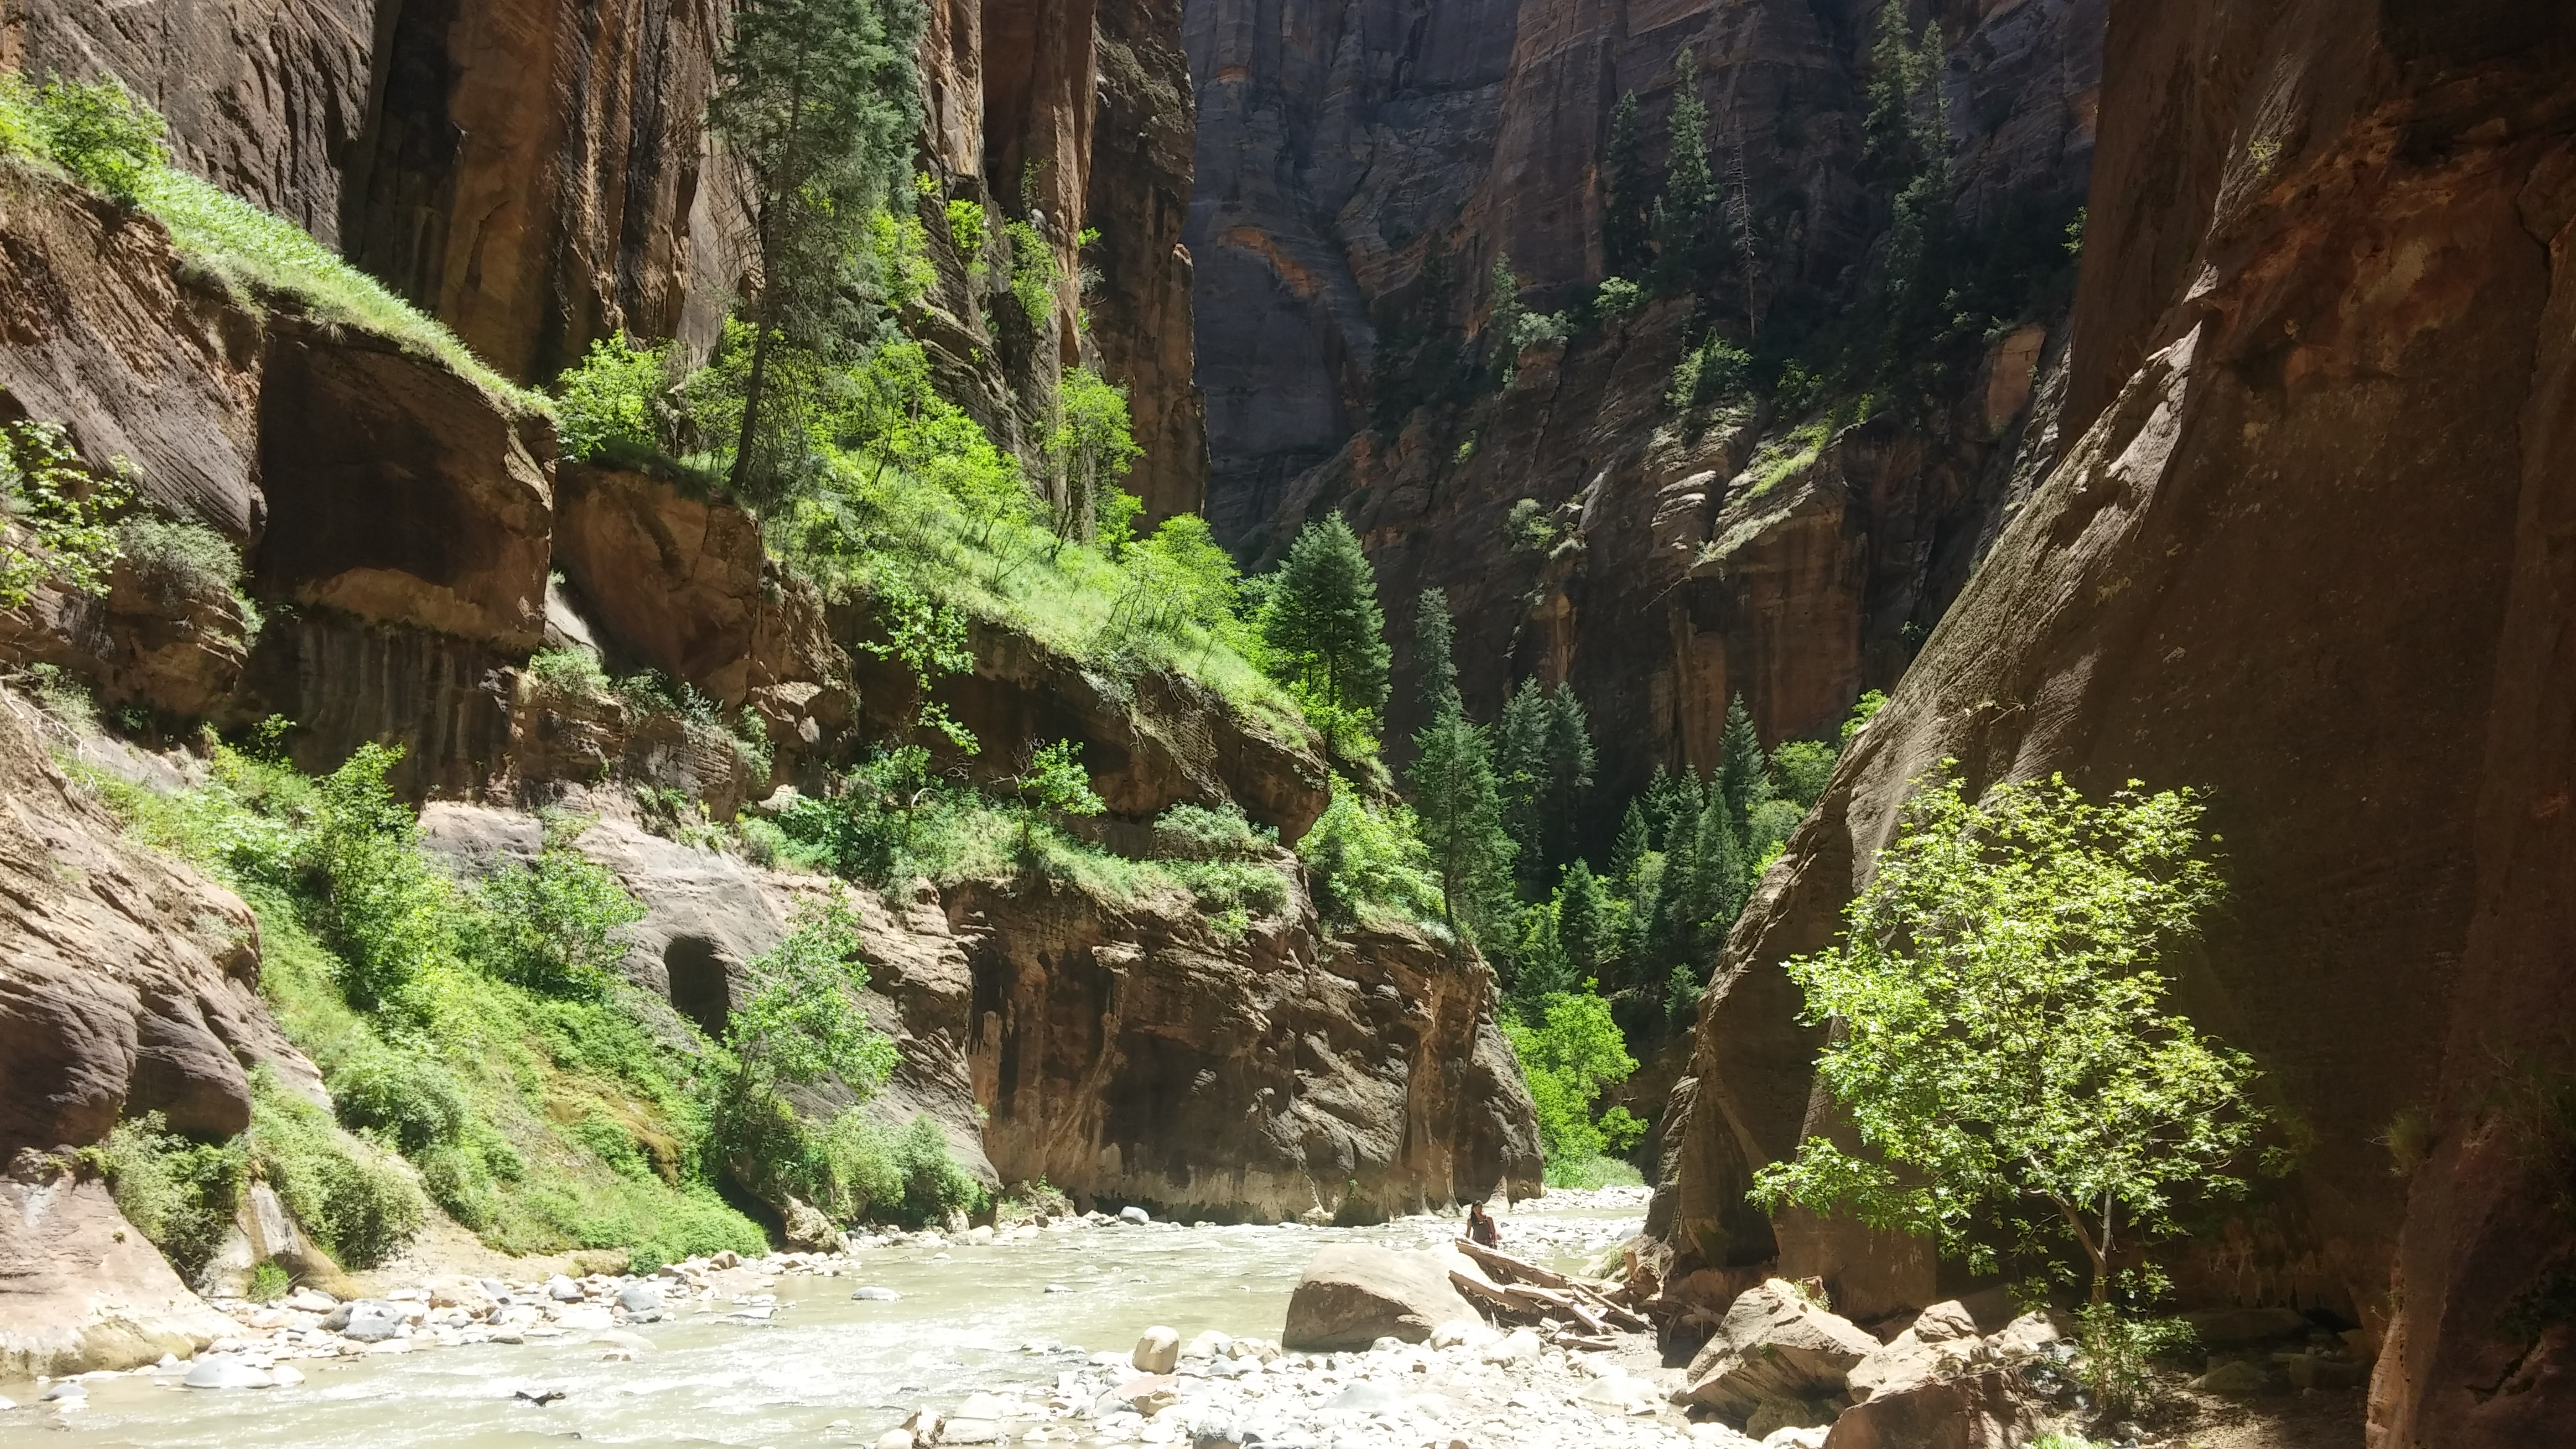 The Narrows of Zion National Park